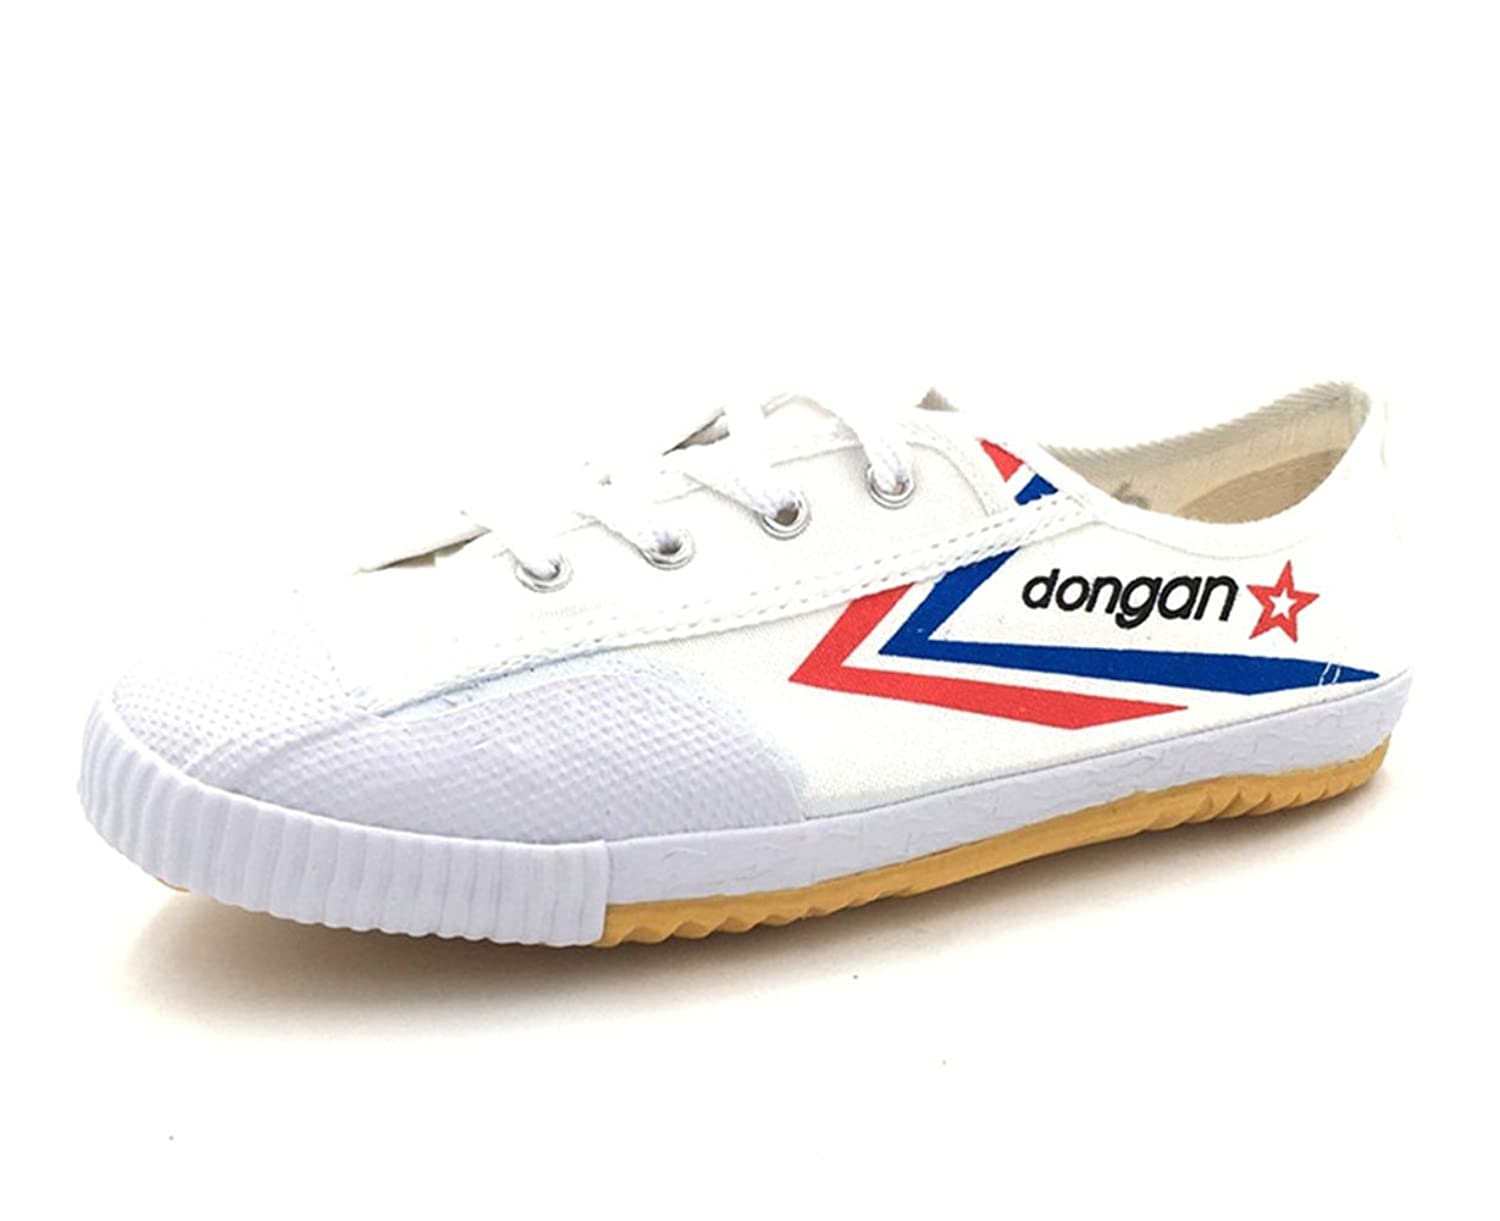 (DONGAN)Running Shoes Lace Ups Casual Trainers for men